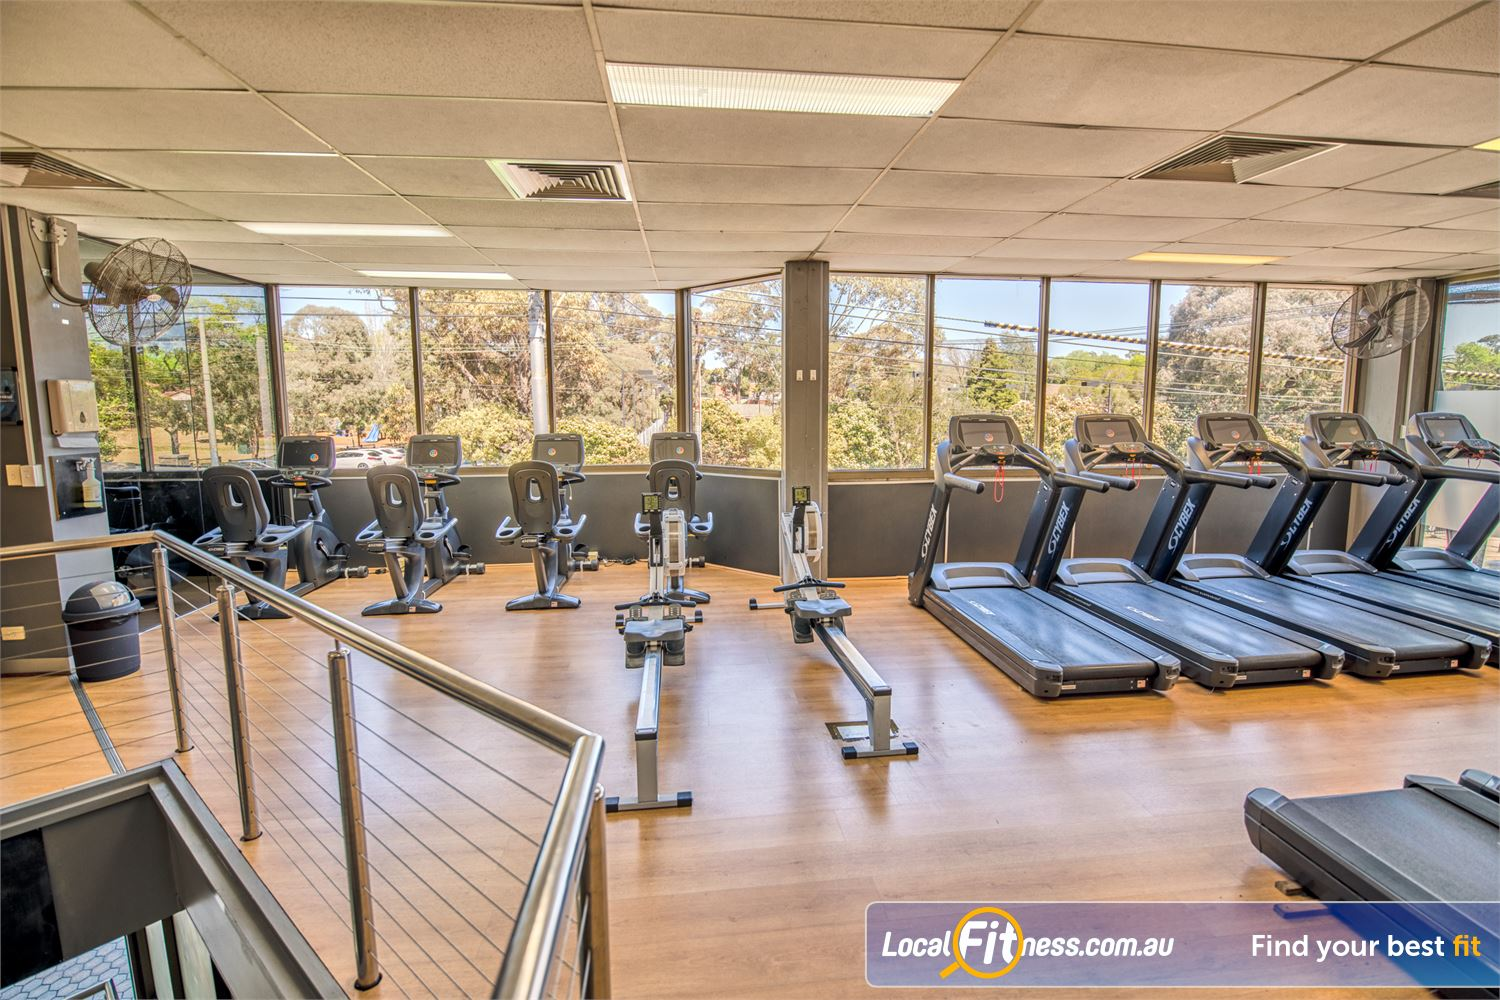 Goodlife Health Clubs Balwyn Our Balwyn gym provides a wide variety inc. treadmills, cycle bikes, rowers and more.